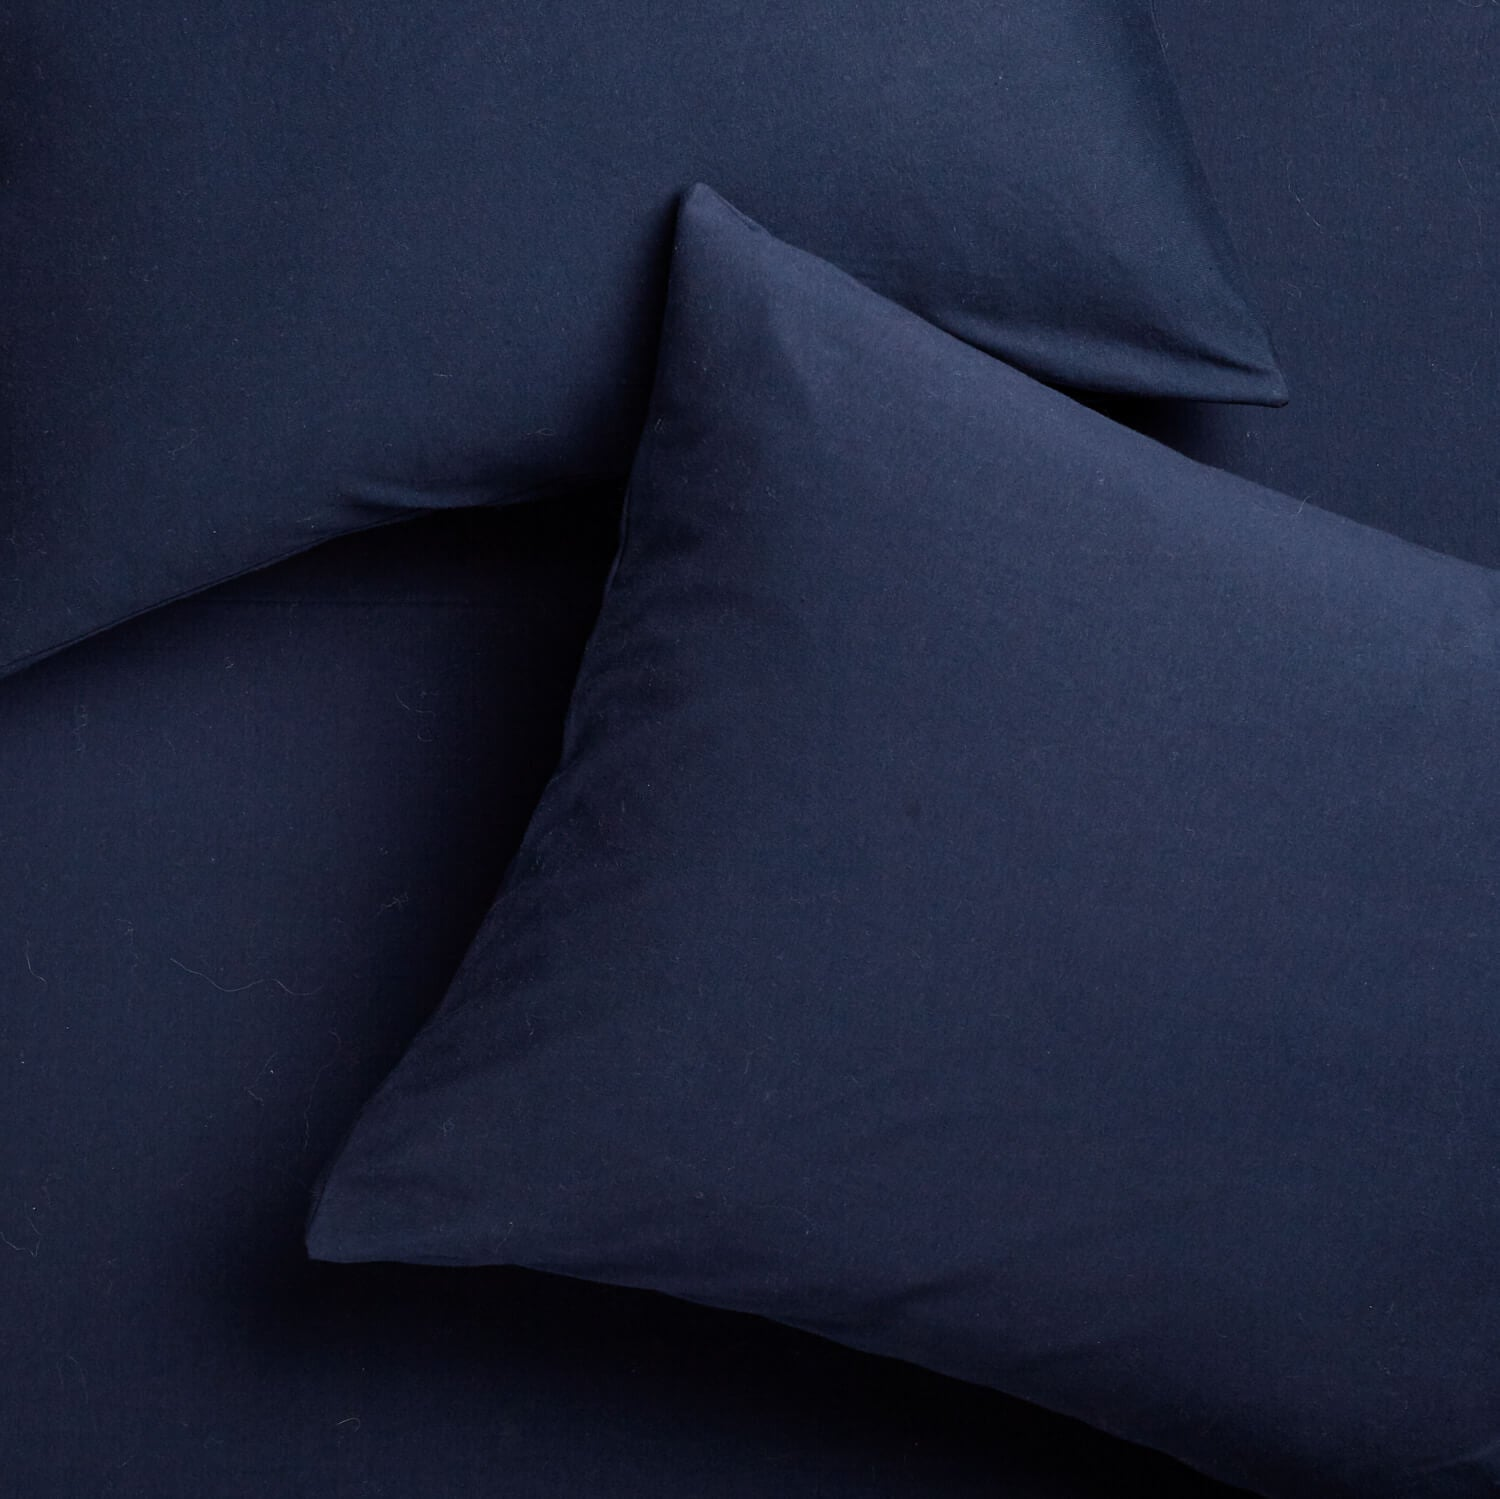 Super Soft T-Shirt Jersey Pillowcase Set - Navy - Navy